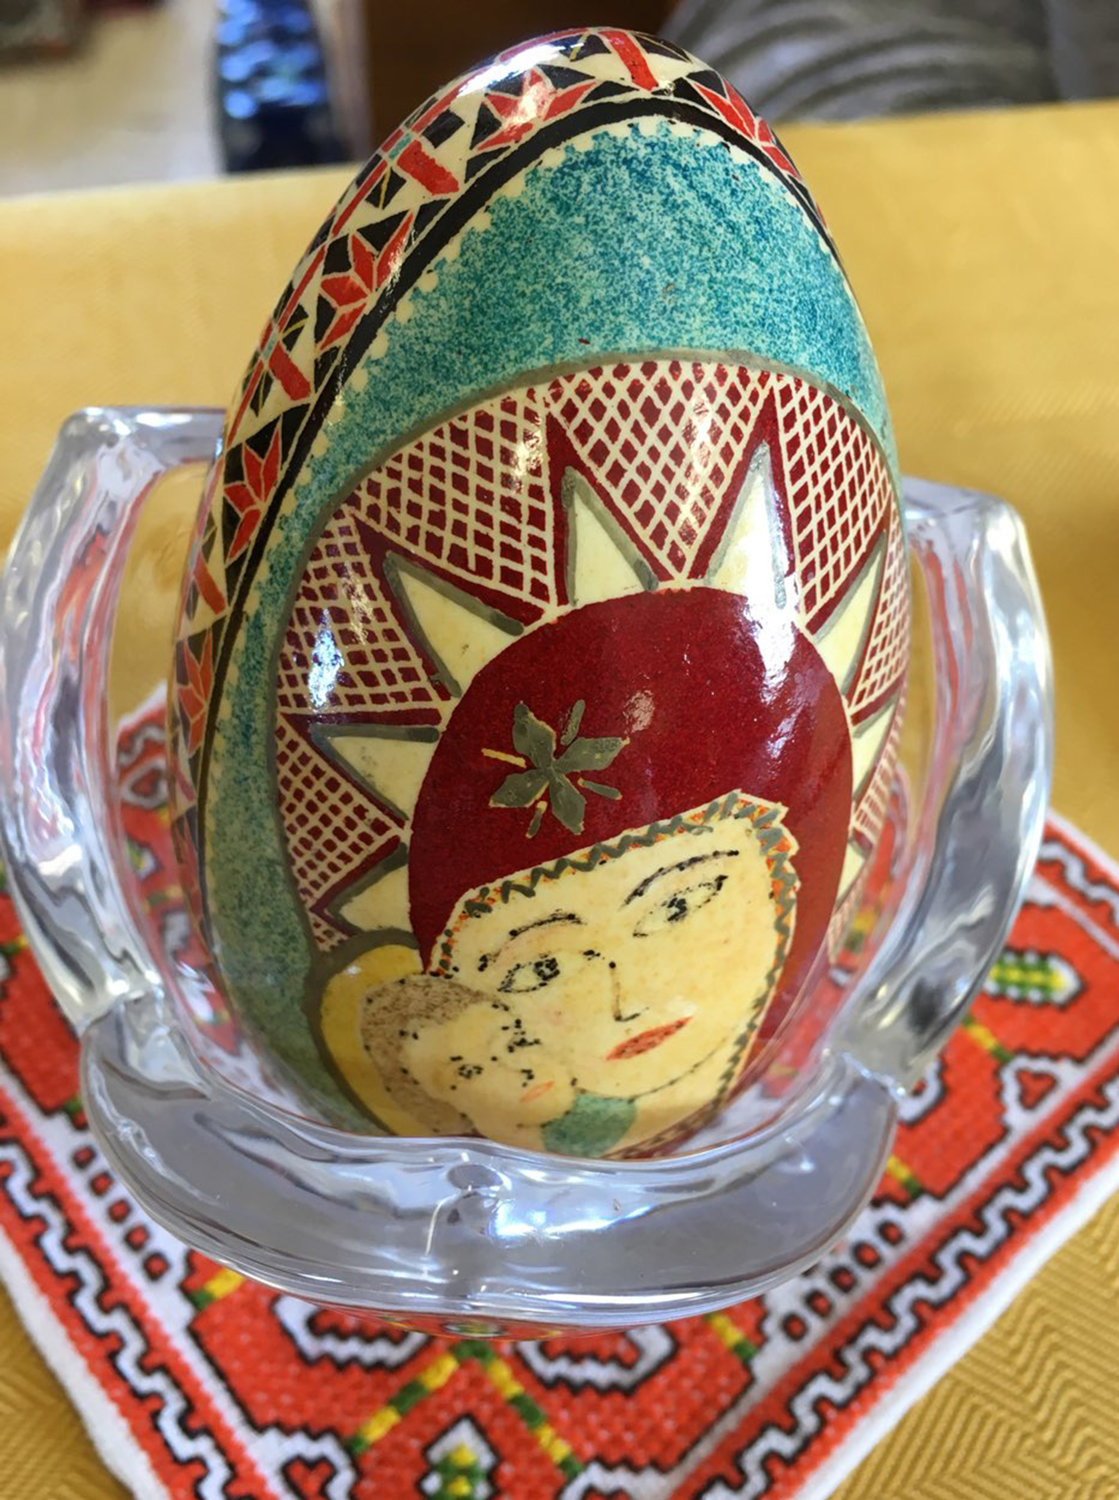 RELIGIOUS PORTRAIT — With wax, dyes and traditional tools, Mary Kuchera, of Oriskany, drew the portrait of the Virgin Mary and child on her pysanky egg, which all have unique symbolisms and designs.